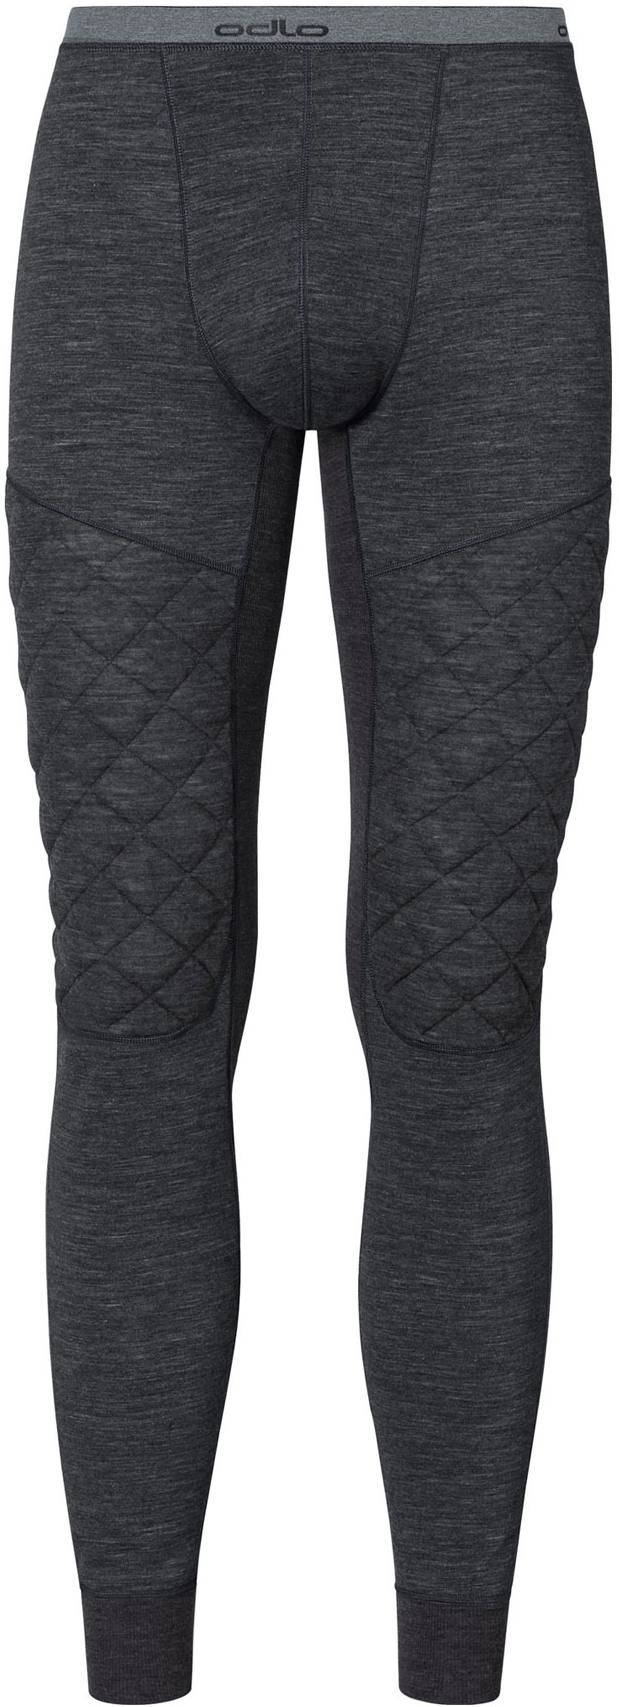 Odlo Revolution X-Warm Long Pants Musta M